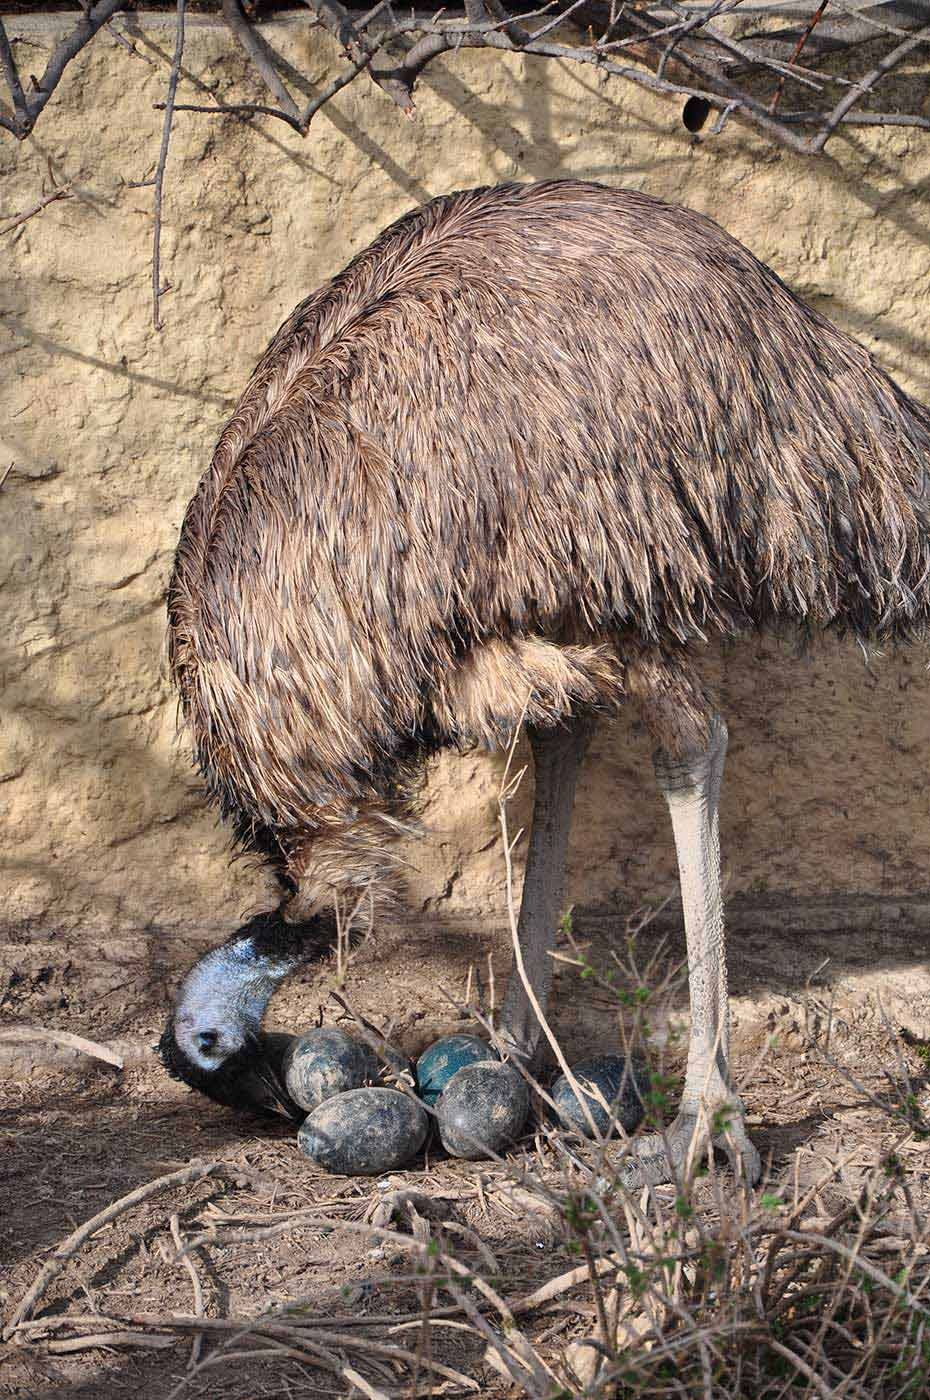 An emu with its eggs. - click to view larger image